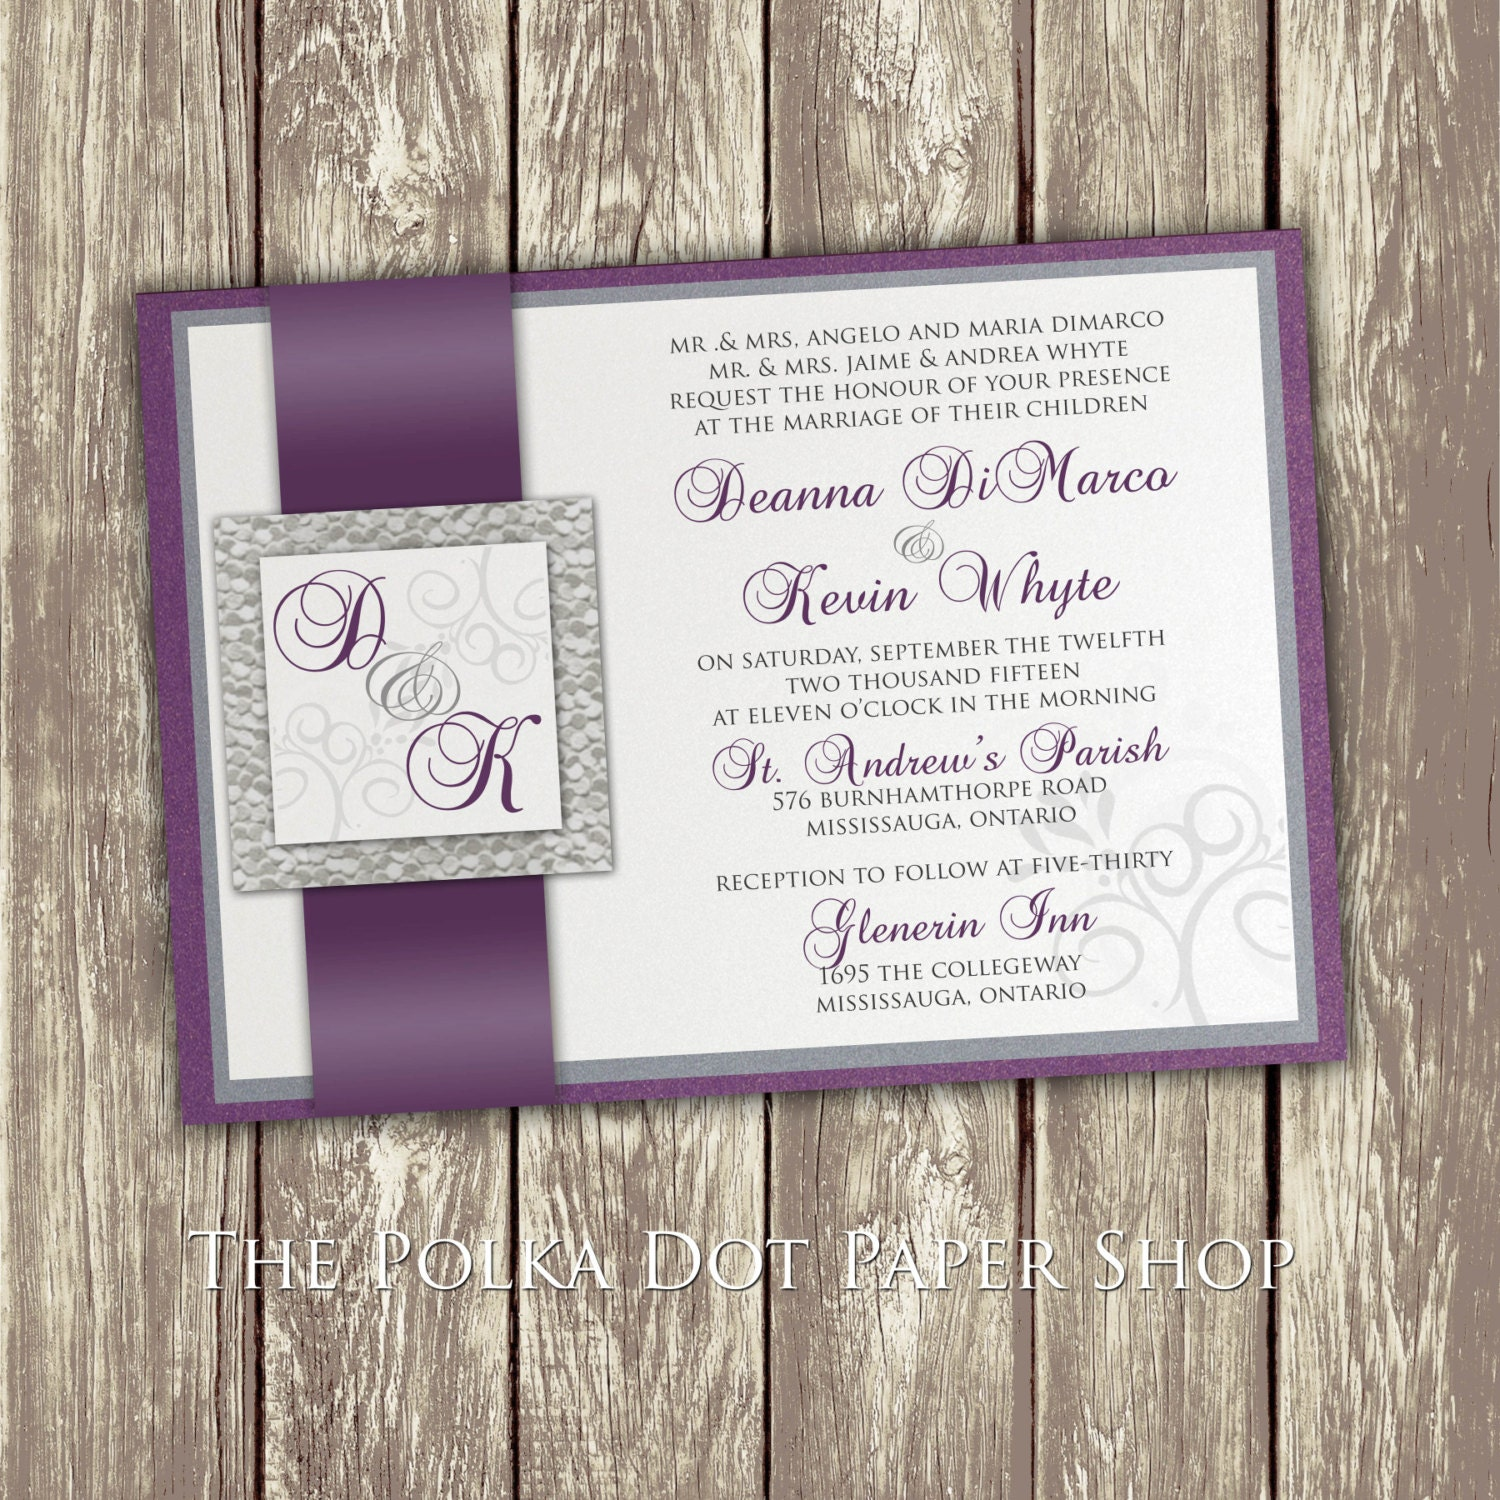 Silver Wedding Invitations: Wedding Invitation / Purple And Silver Invitation / Pebble